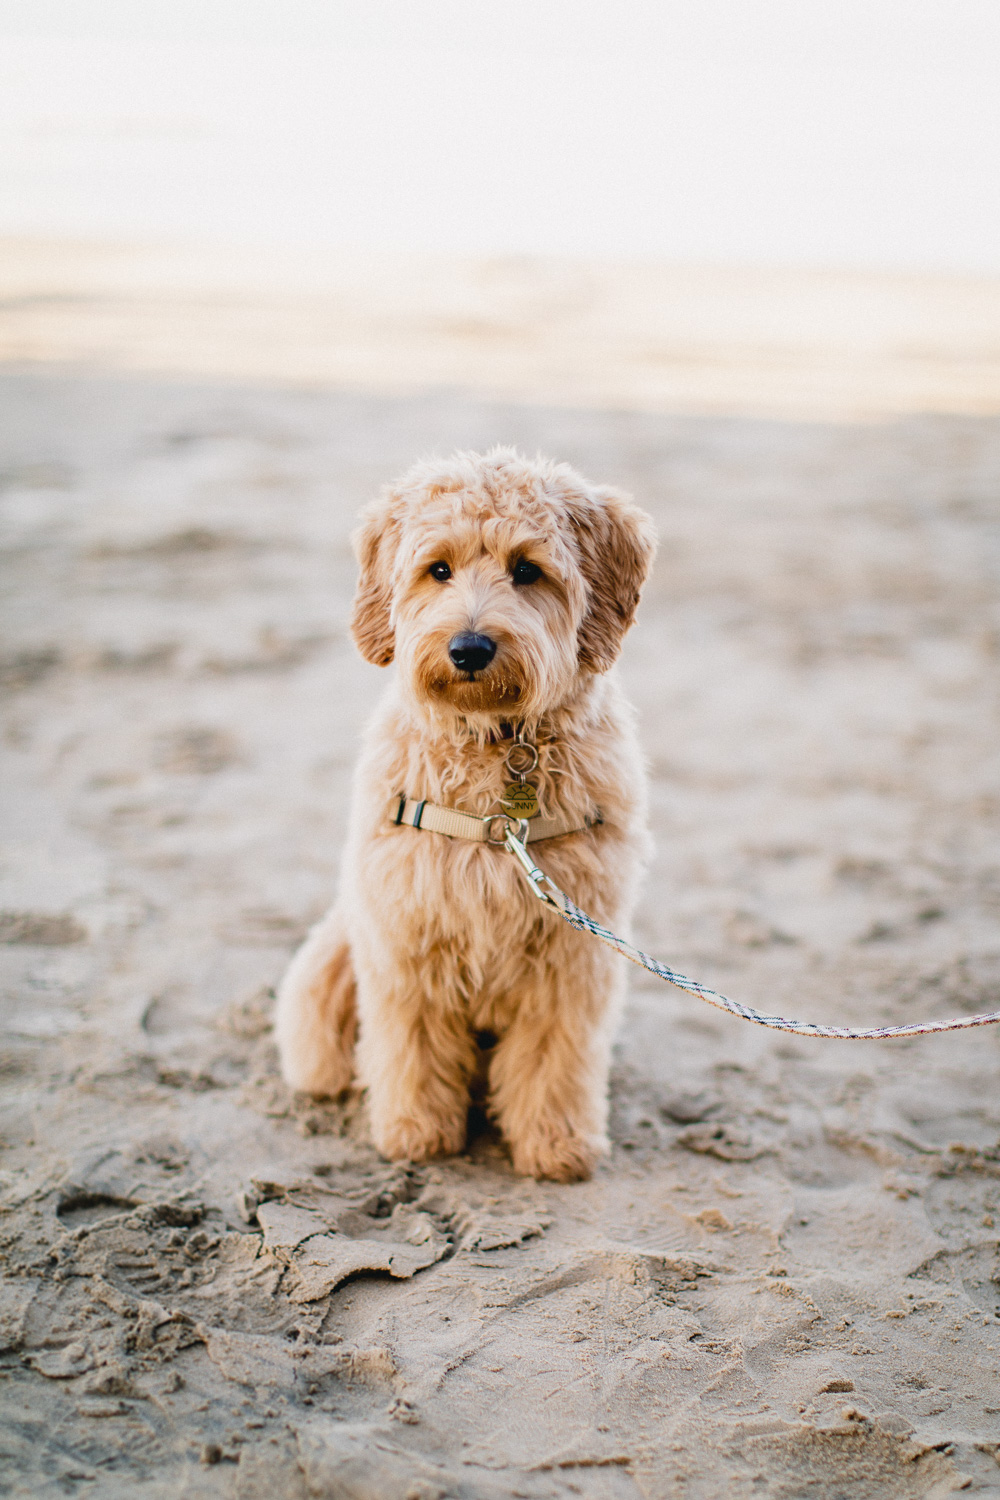 Pismo-Beach-Couples-Photography-Session-With-Puppy-100.jpg